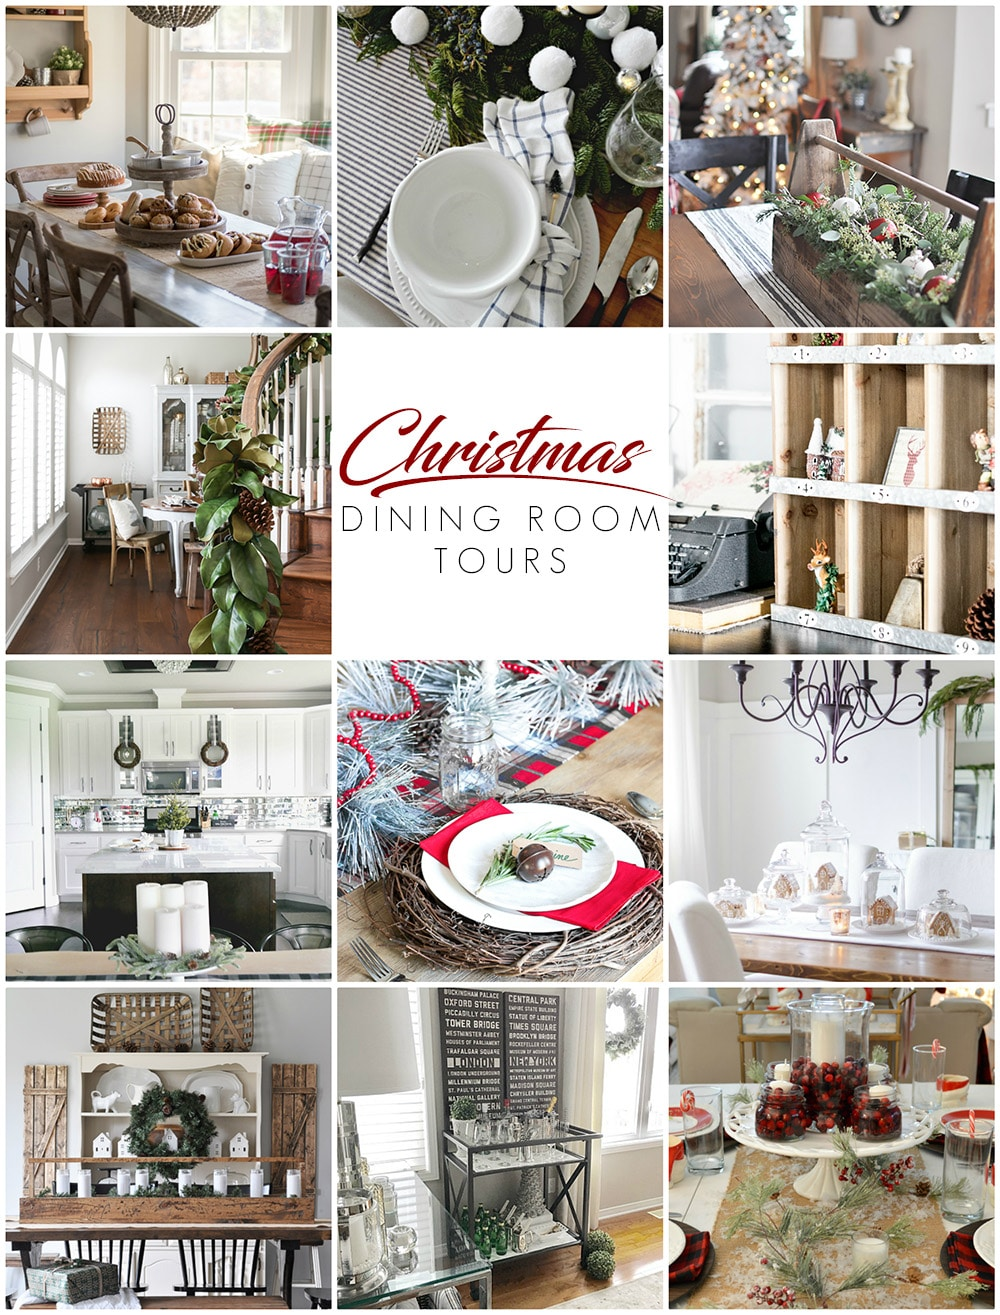 See 11 home design bloggers dining room tours decorated for Christmas! Check out all of the festive holiday interior decor ideas and tips!